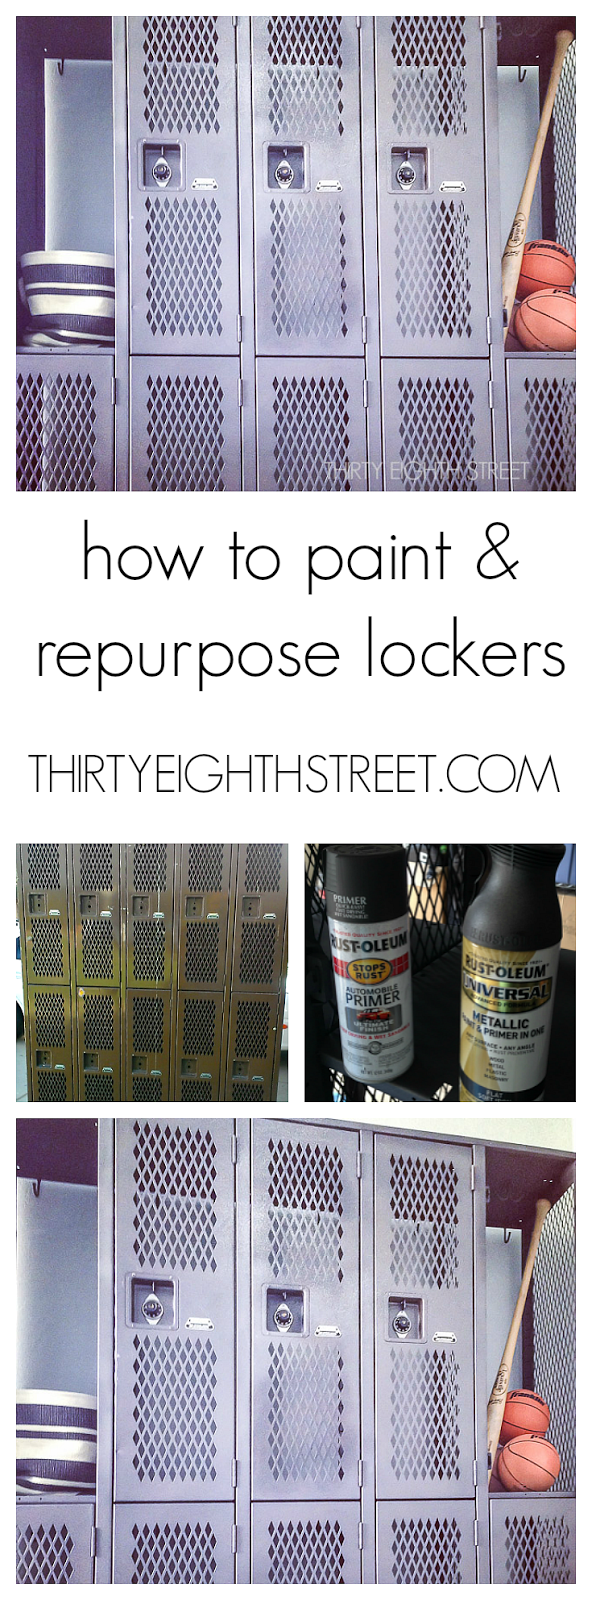 painting metal lockers, diy, how to prep metal storage lockers, give lockers an industrial look, boy bedroom ideas, industrial bedroom ideas, adding lockers to a mudroom, update mudroom with lockers, update boys bedroom with lockers